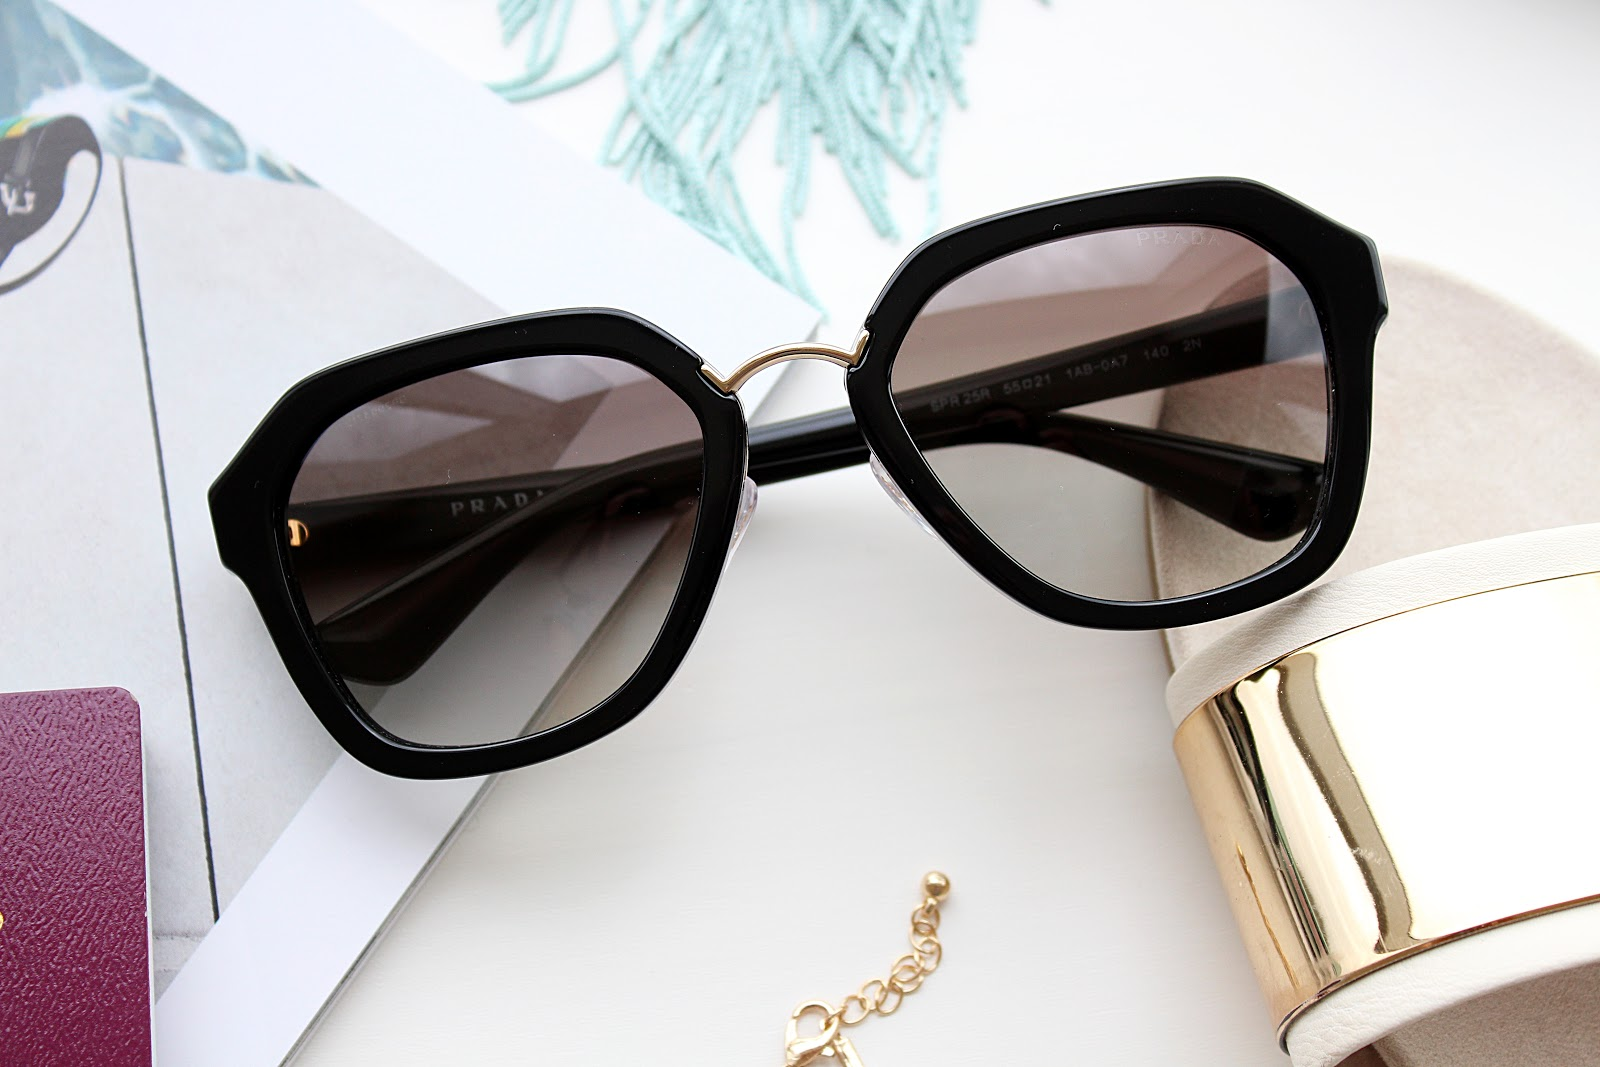 What To Pack For The Maldives, Prada PR25RS Cinema Sunglasses Black, Life in Excess Blog